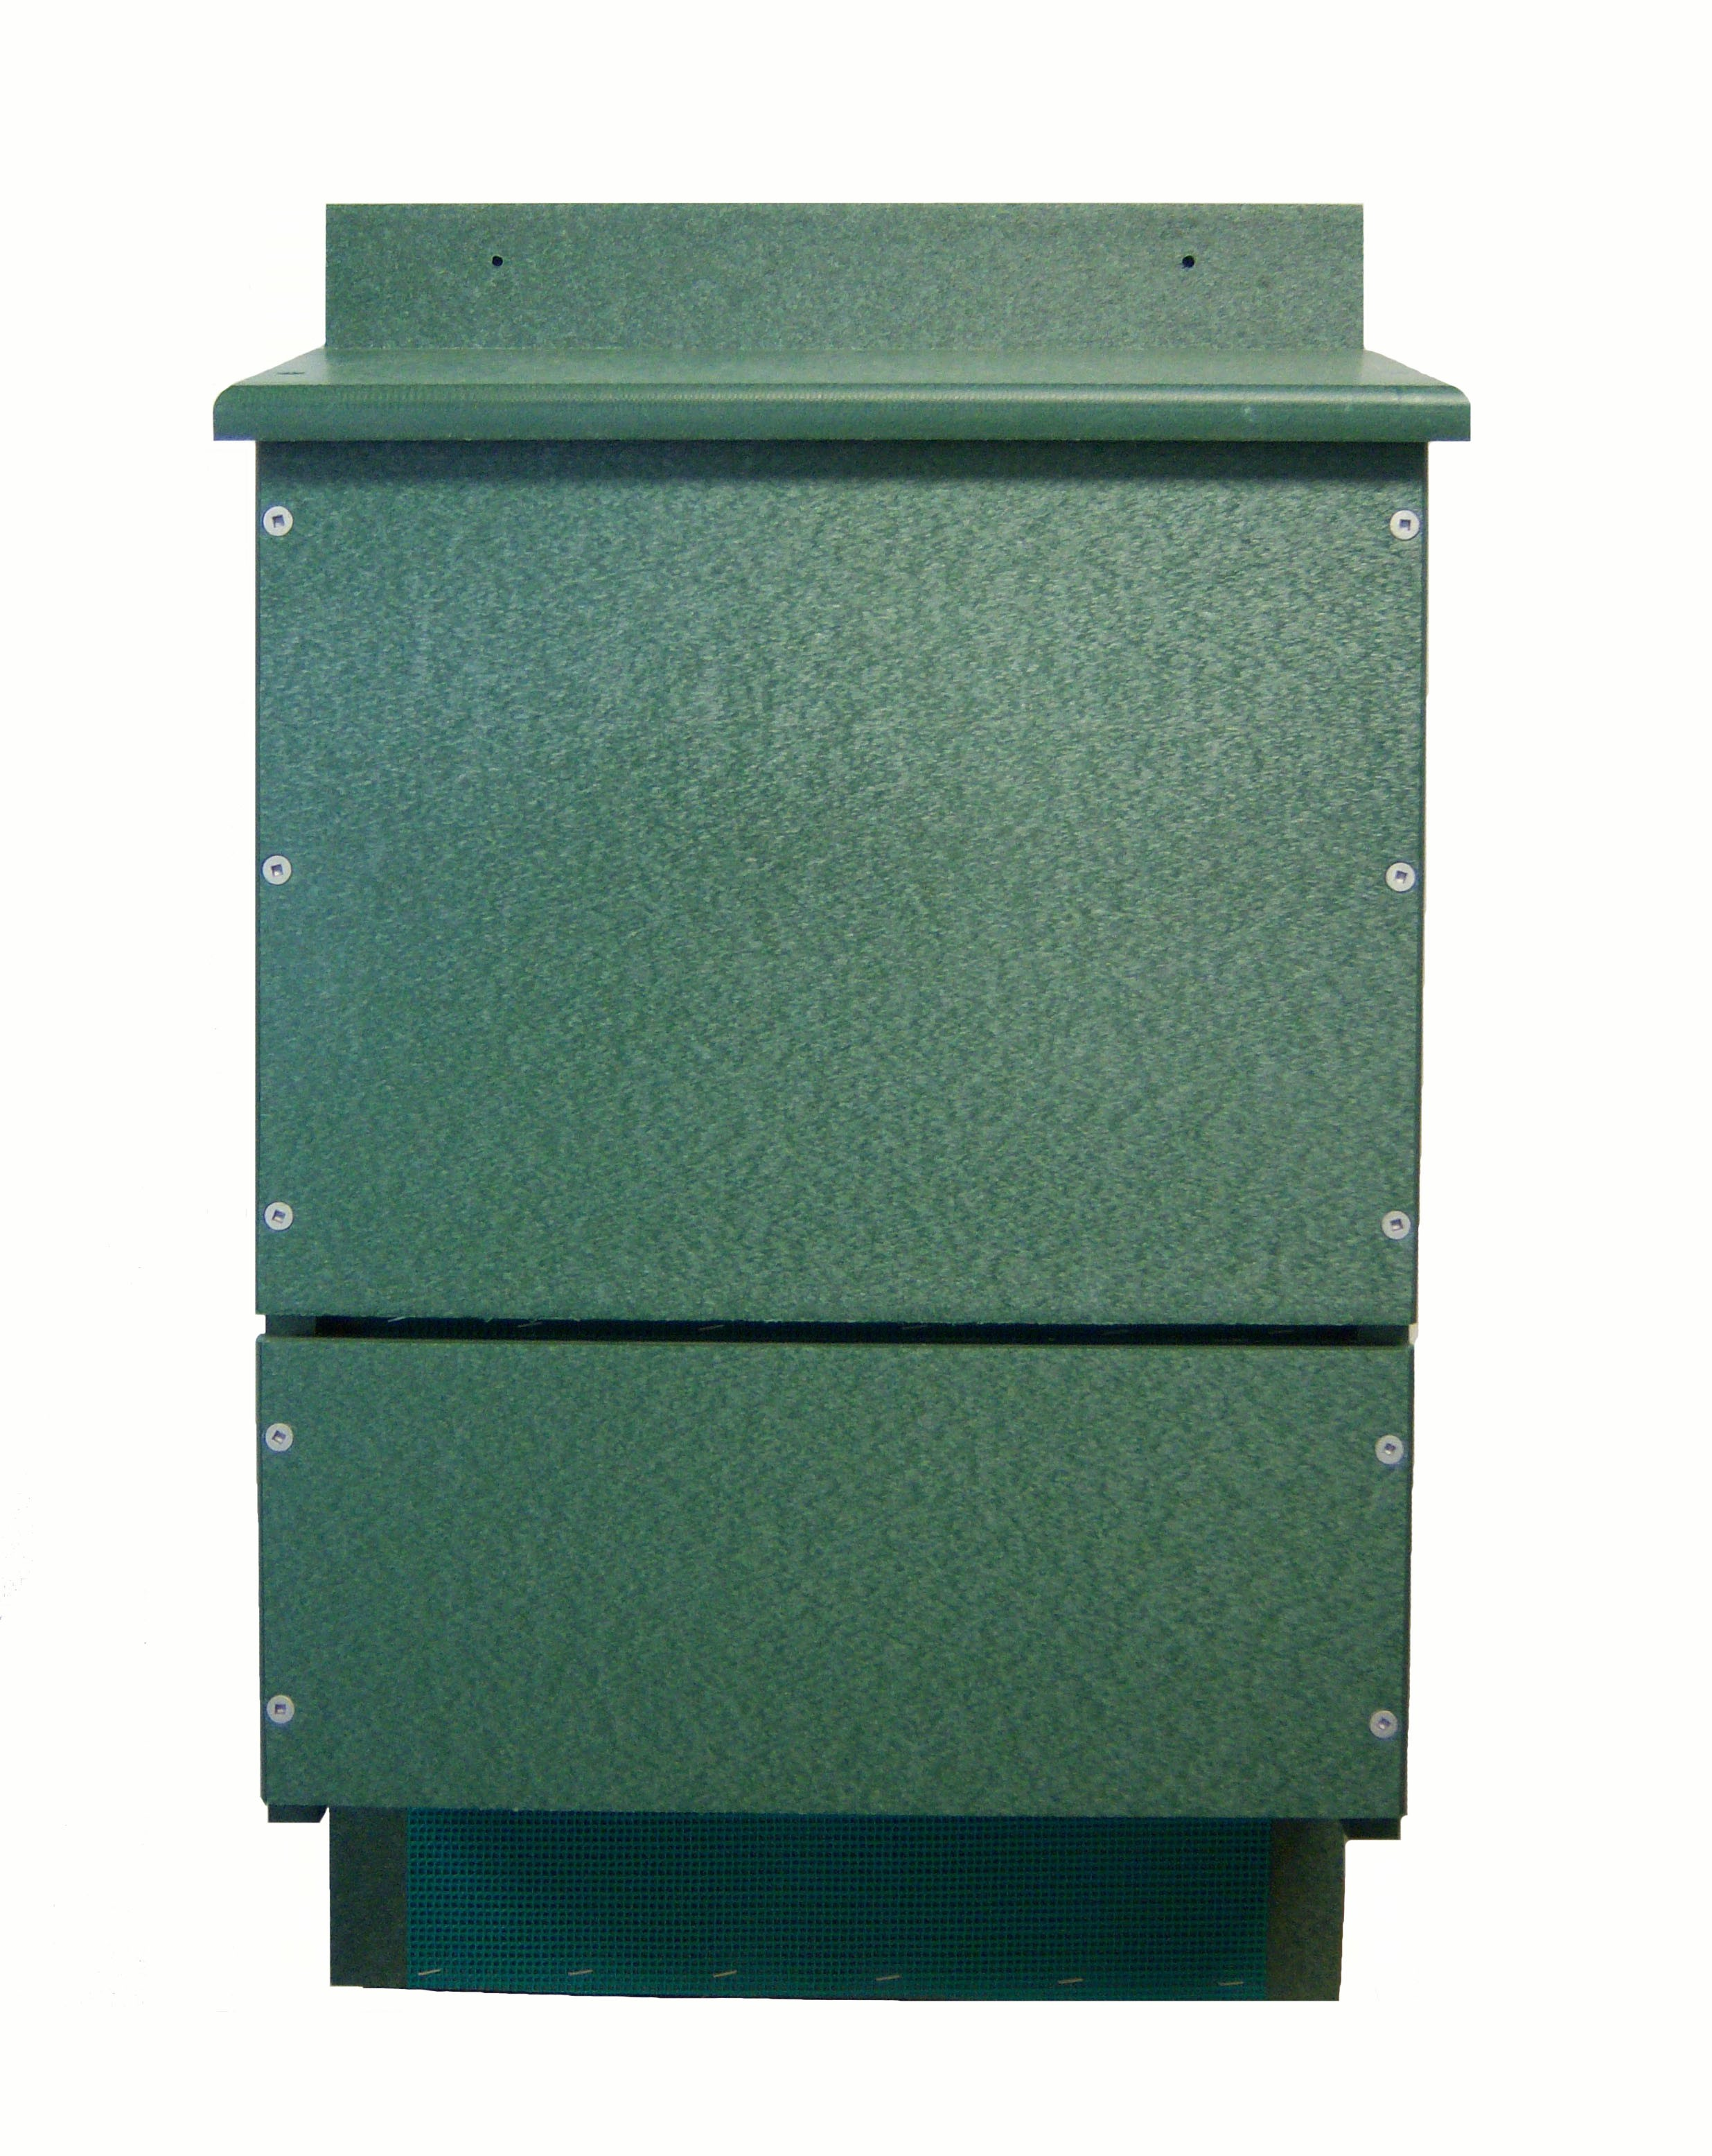 OBC Bat House Triple Chamber Poly Green